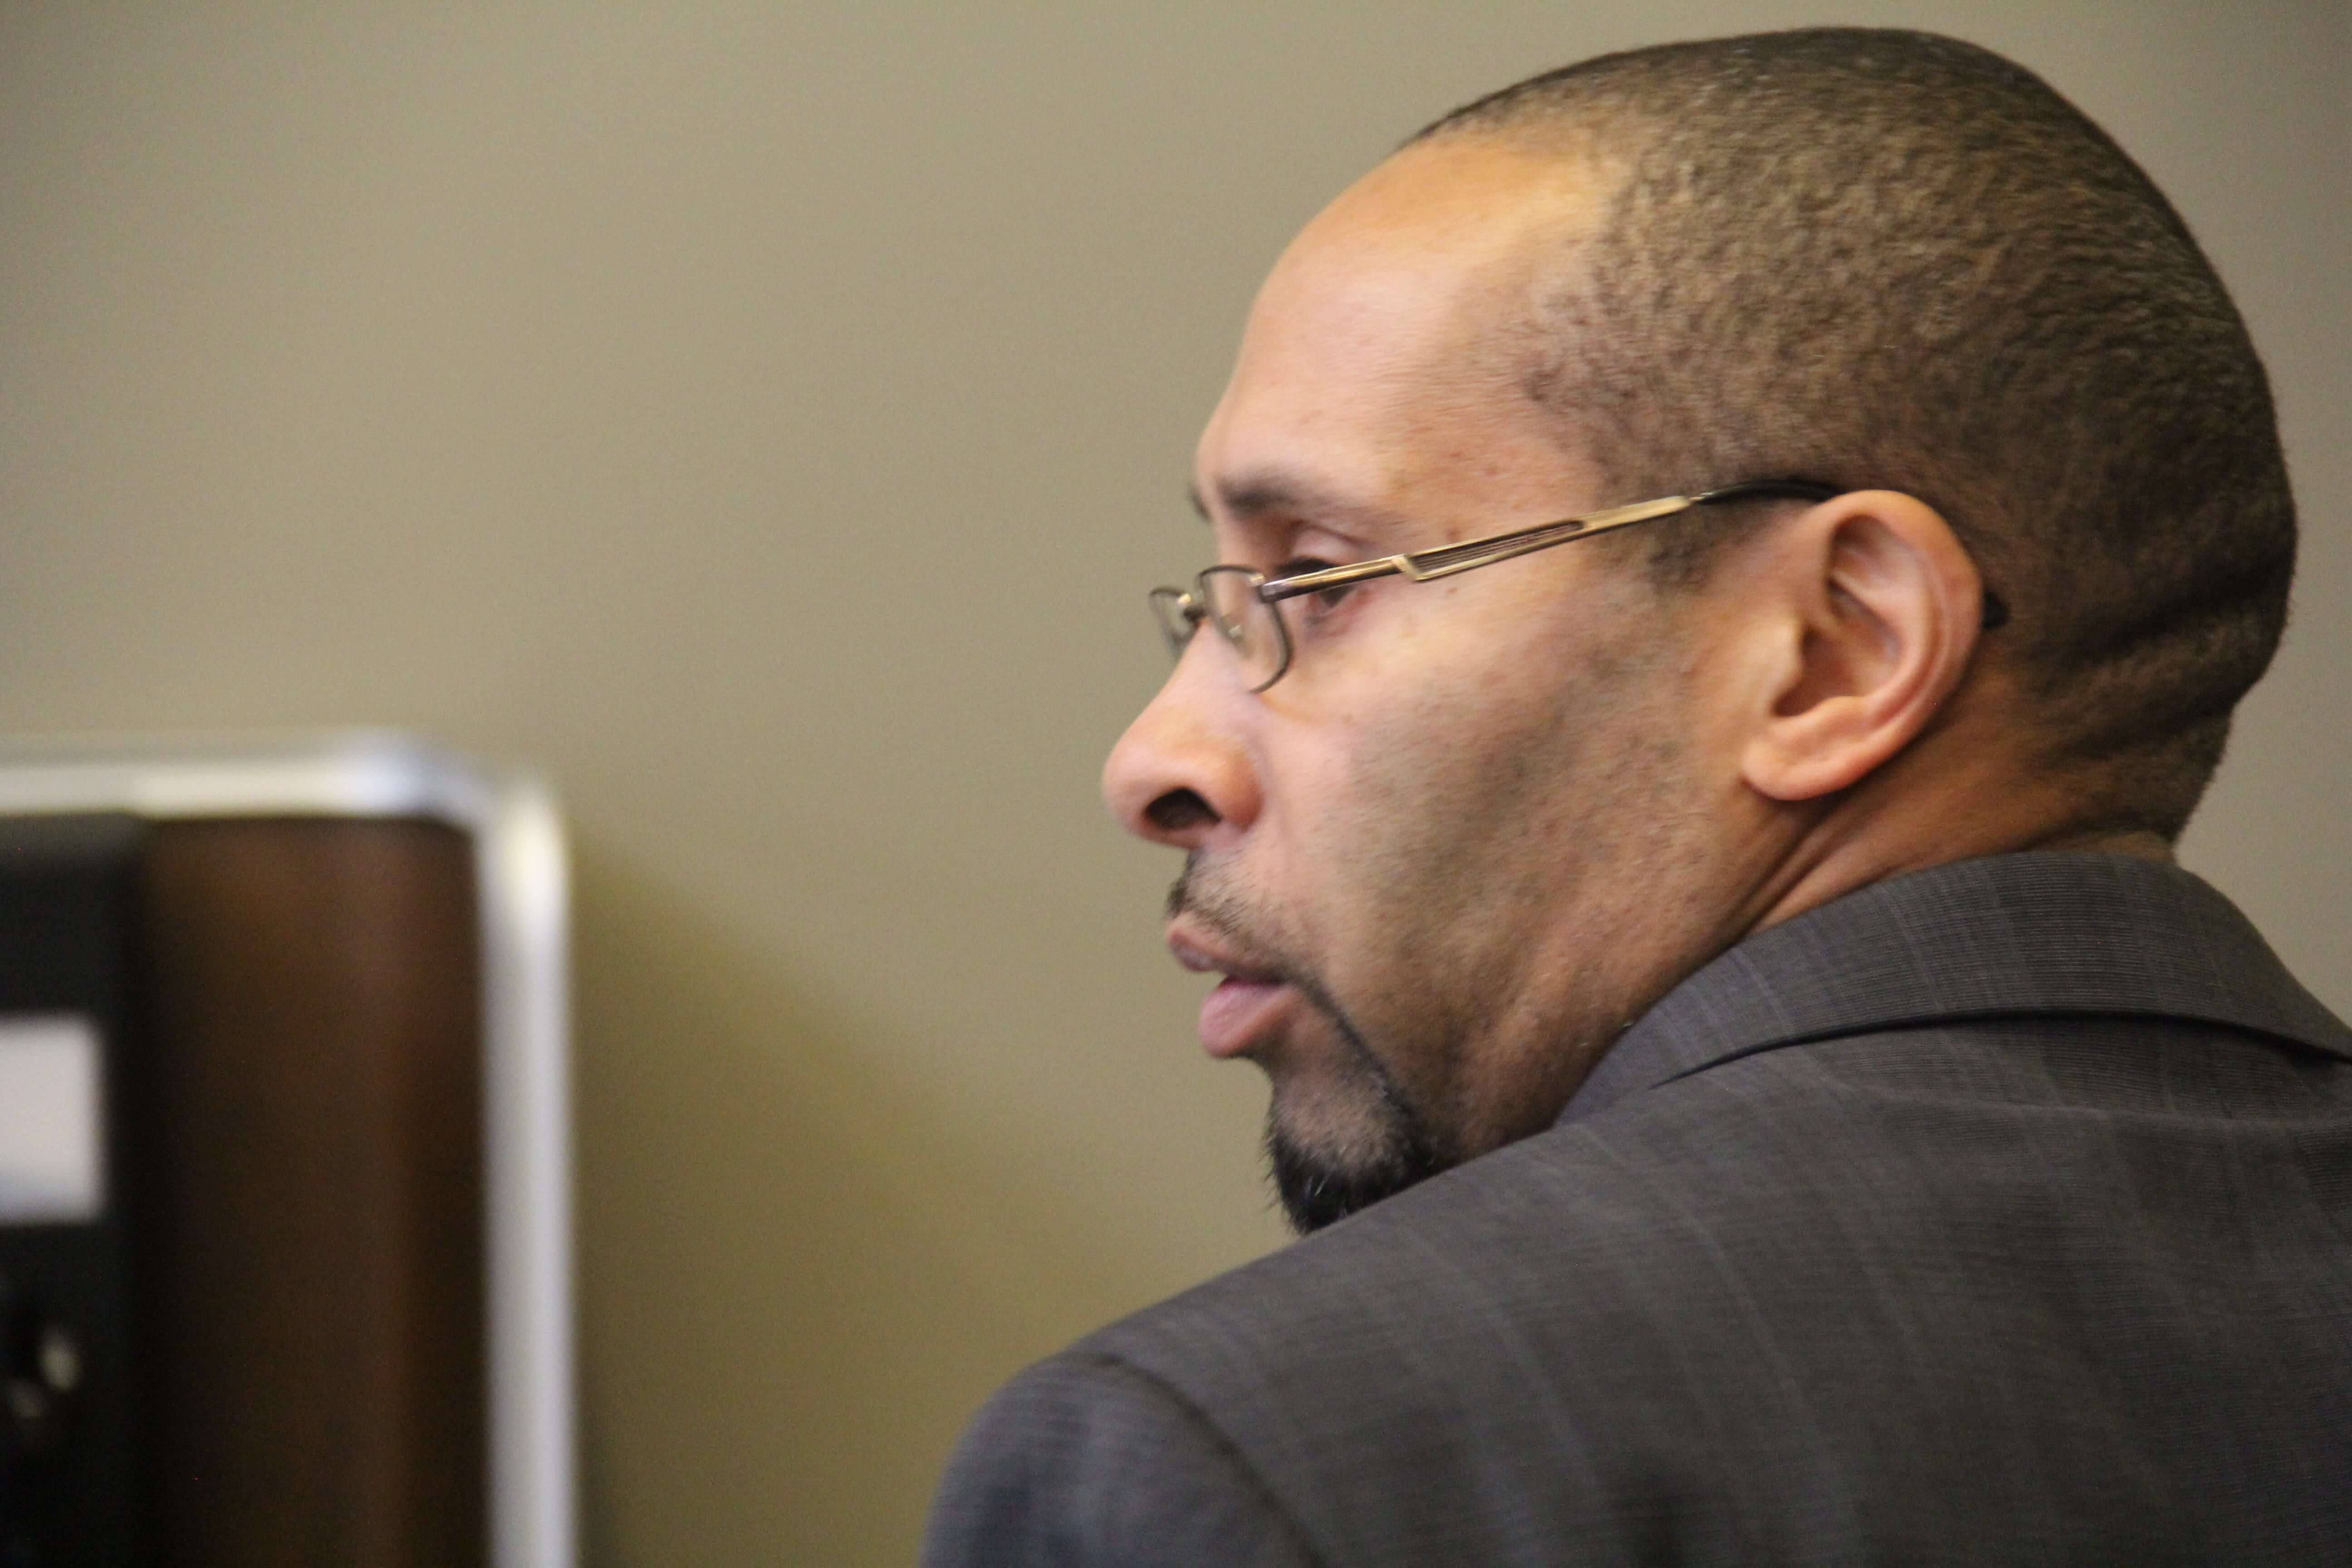 Blake William Jackson enters the courtroom after a lunch break on Tuesday.